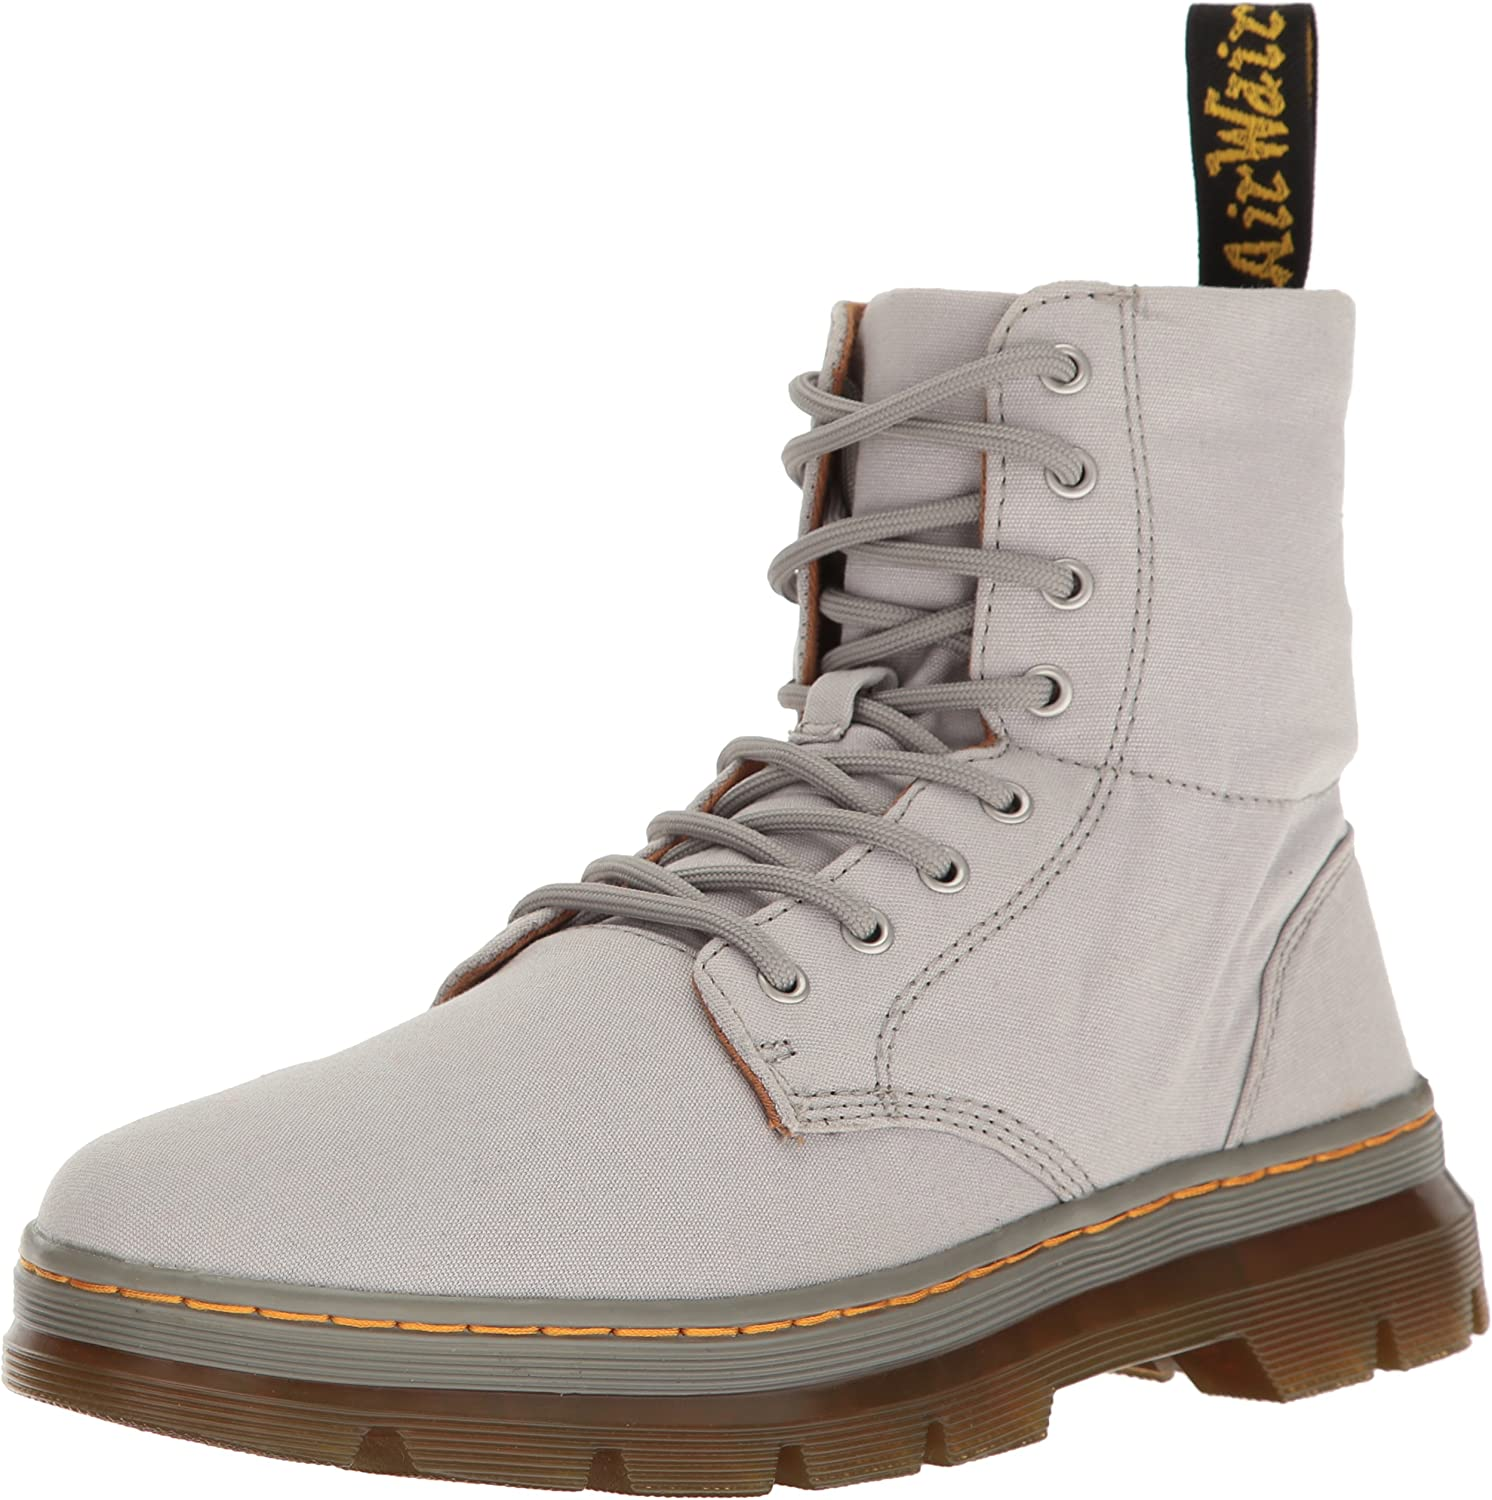 Dr. Martens Unisex Adults' Combs Chukka Boots